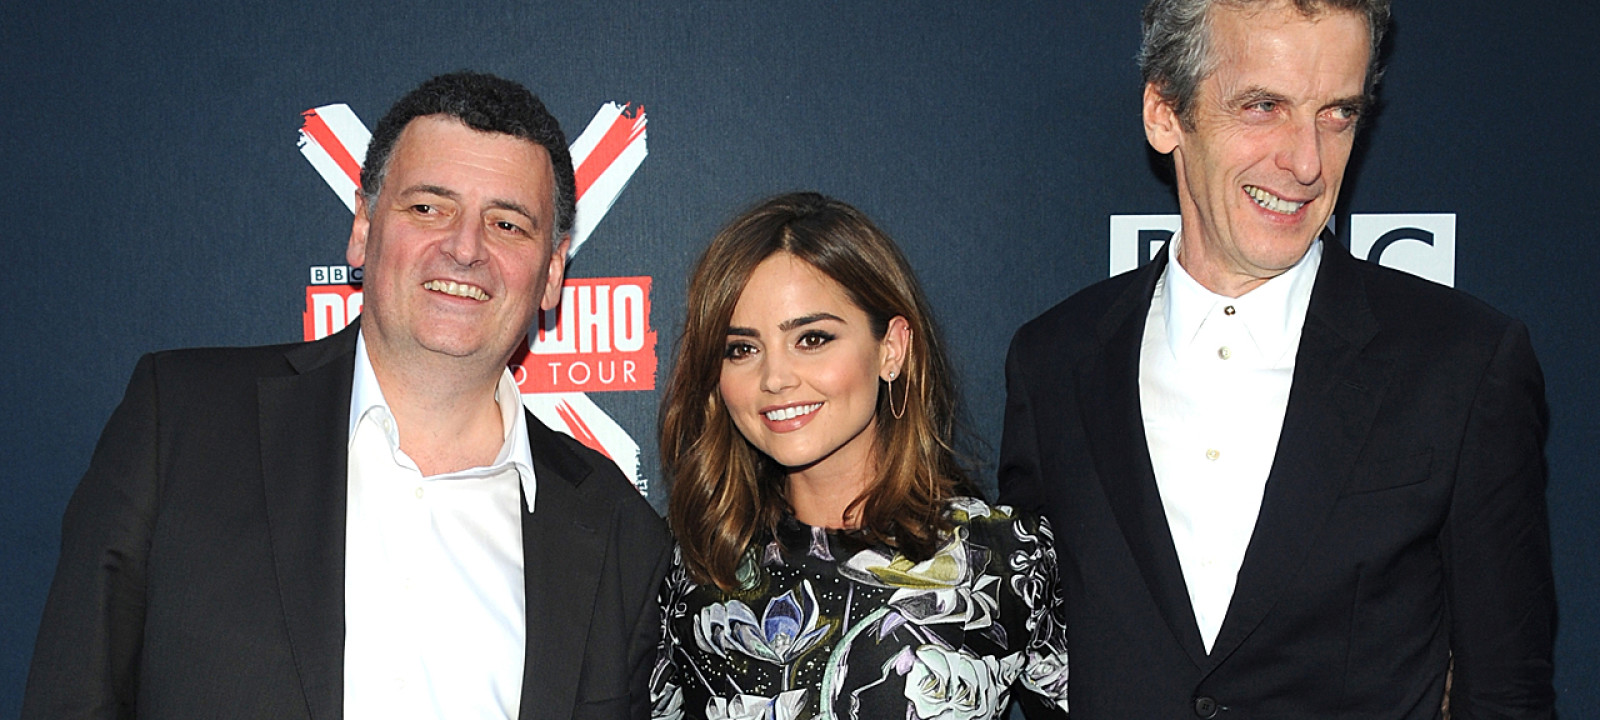 Steven Moffat, Jenna Coleman and Peter Capaldi on the 'Doctor Who' world tour (Pic:  Brad Barket/Getty Images)